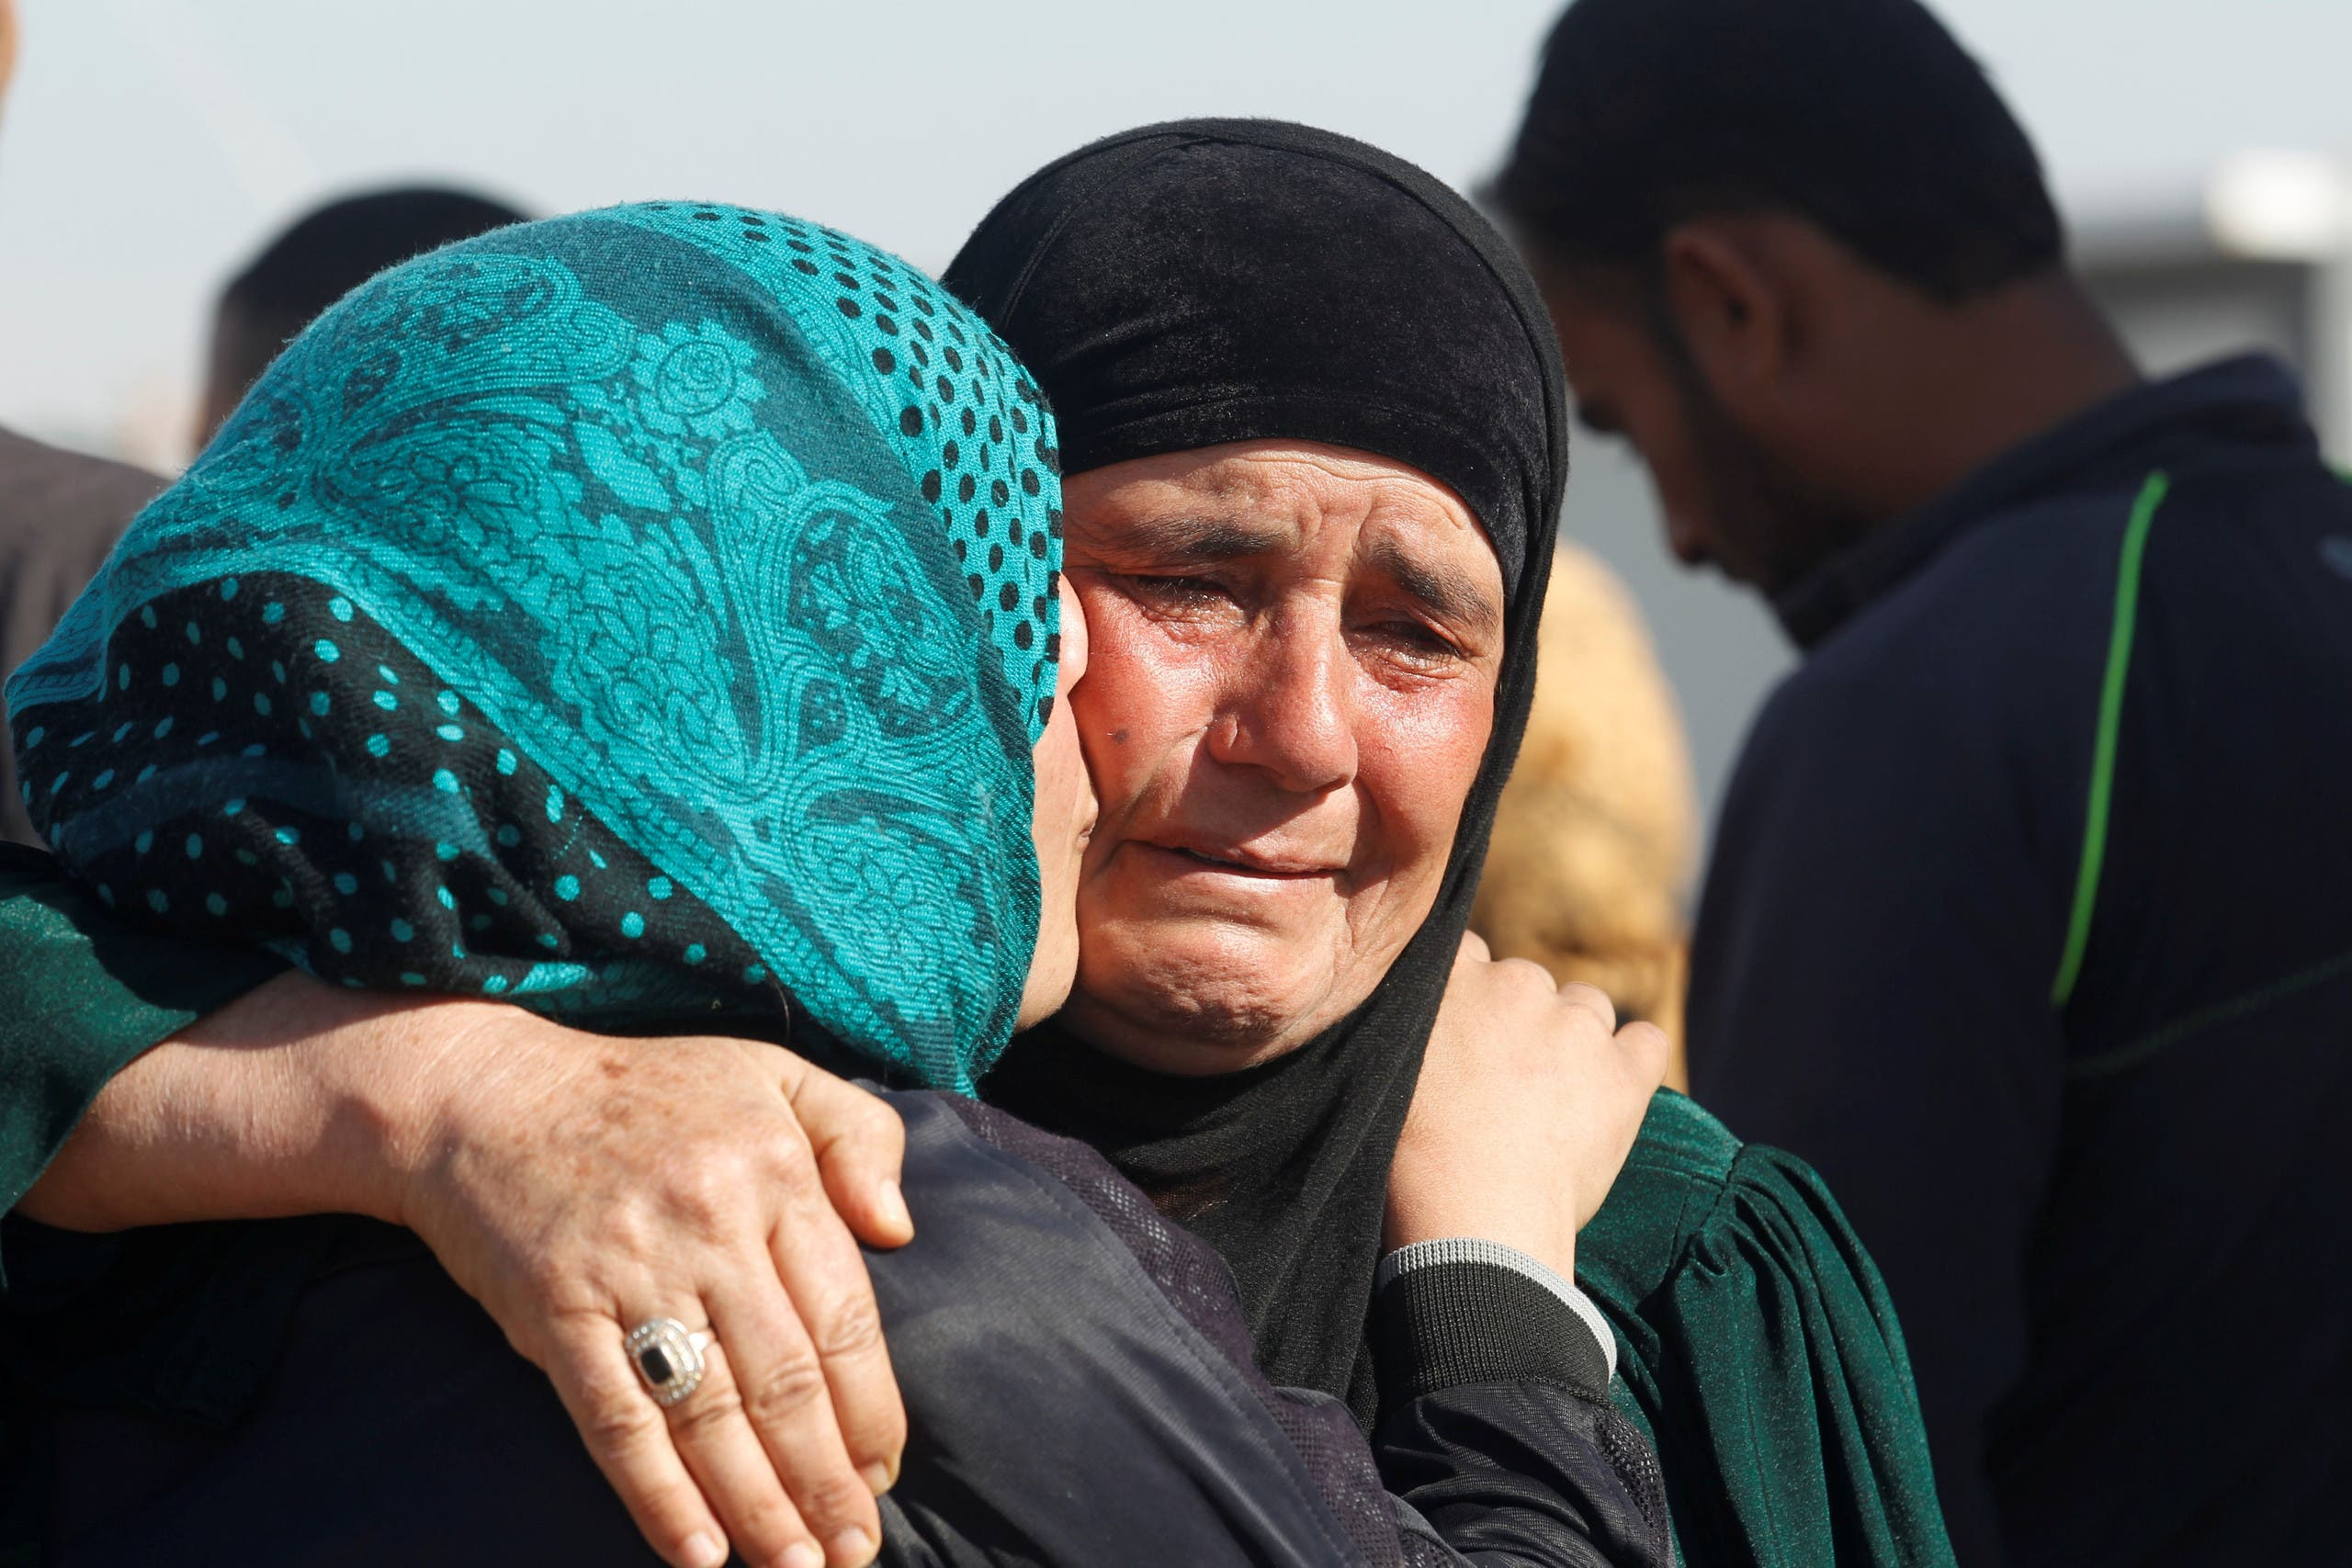 Displaced Iraqi people, who fled the Islamic State stronghold of Mosul, hug each other as they meet for the first time since they fled Mosul, at Khazer camp, Iraq November 26, 2016. REUTERS